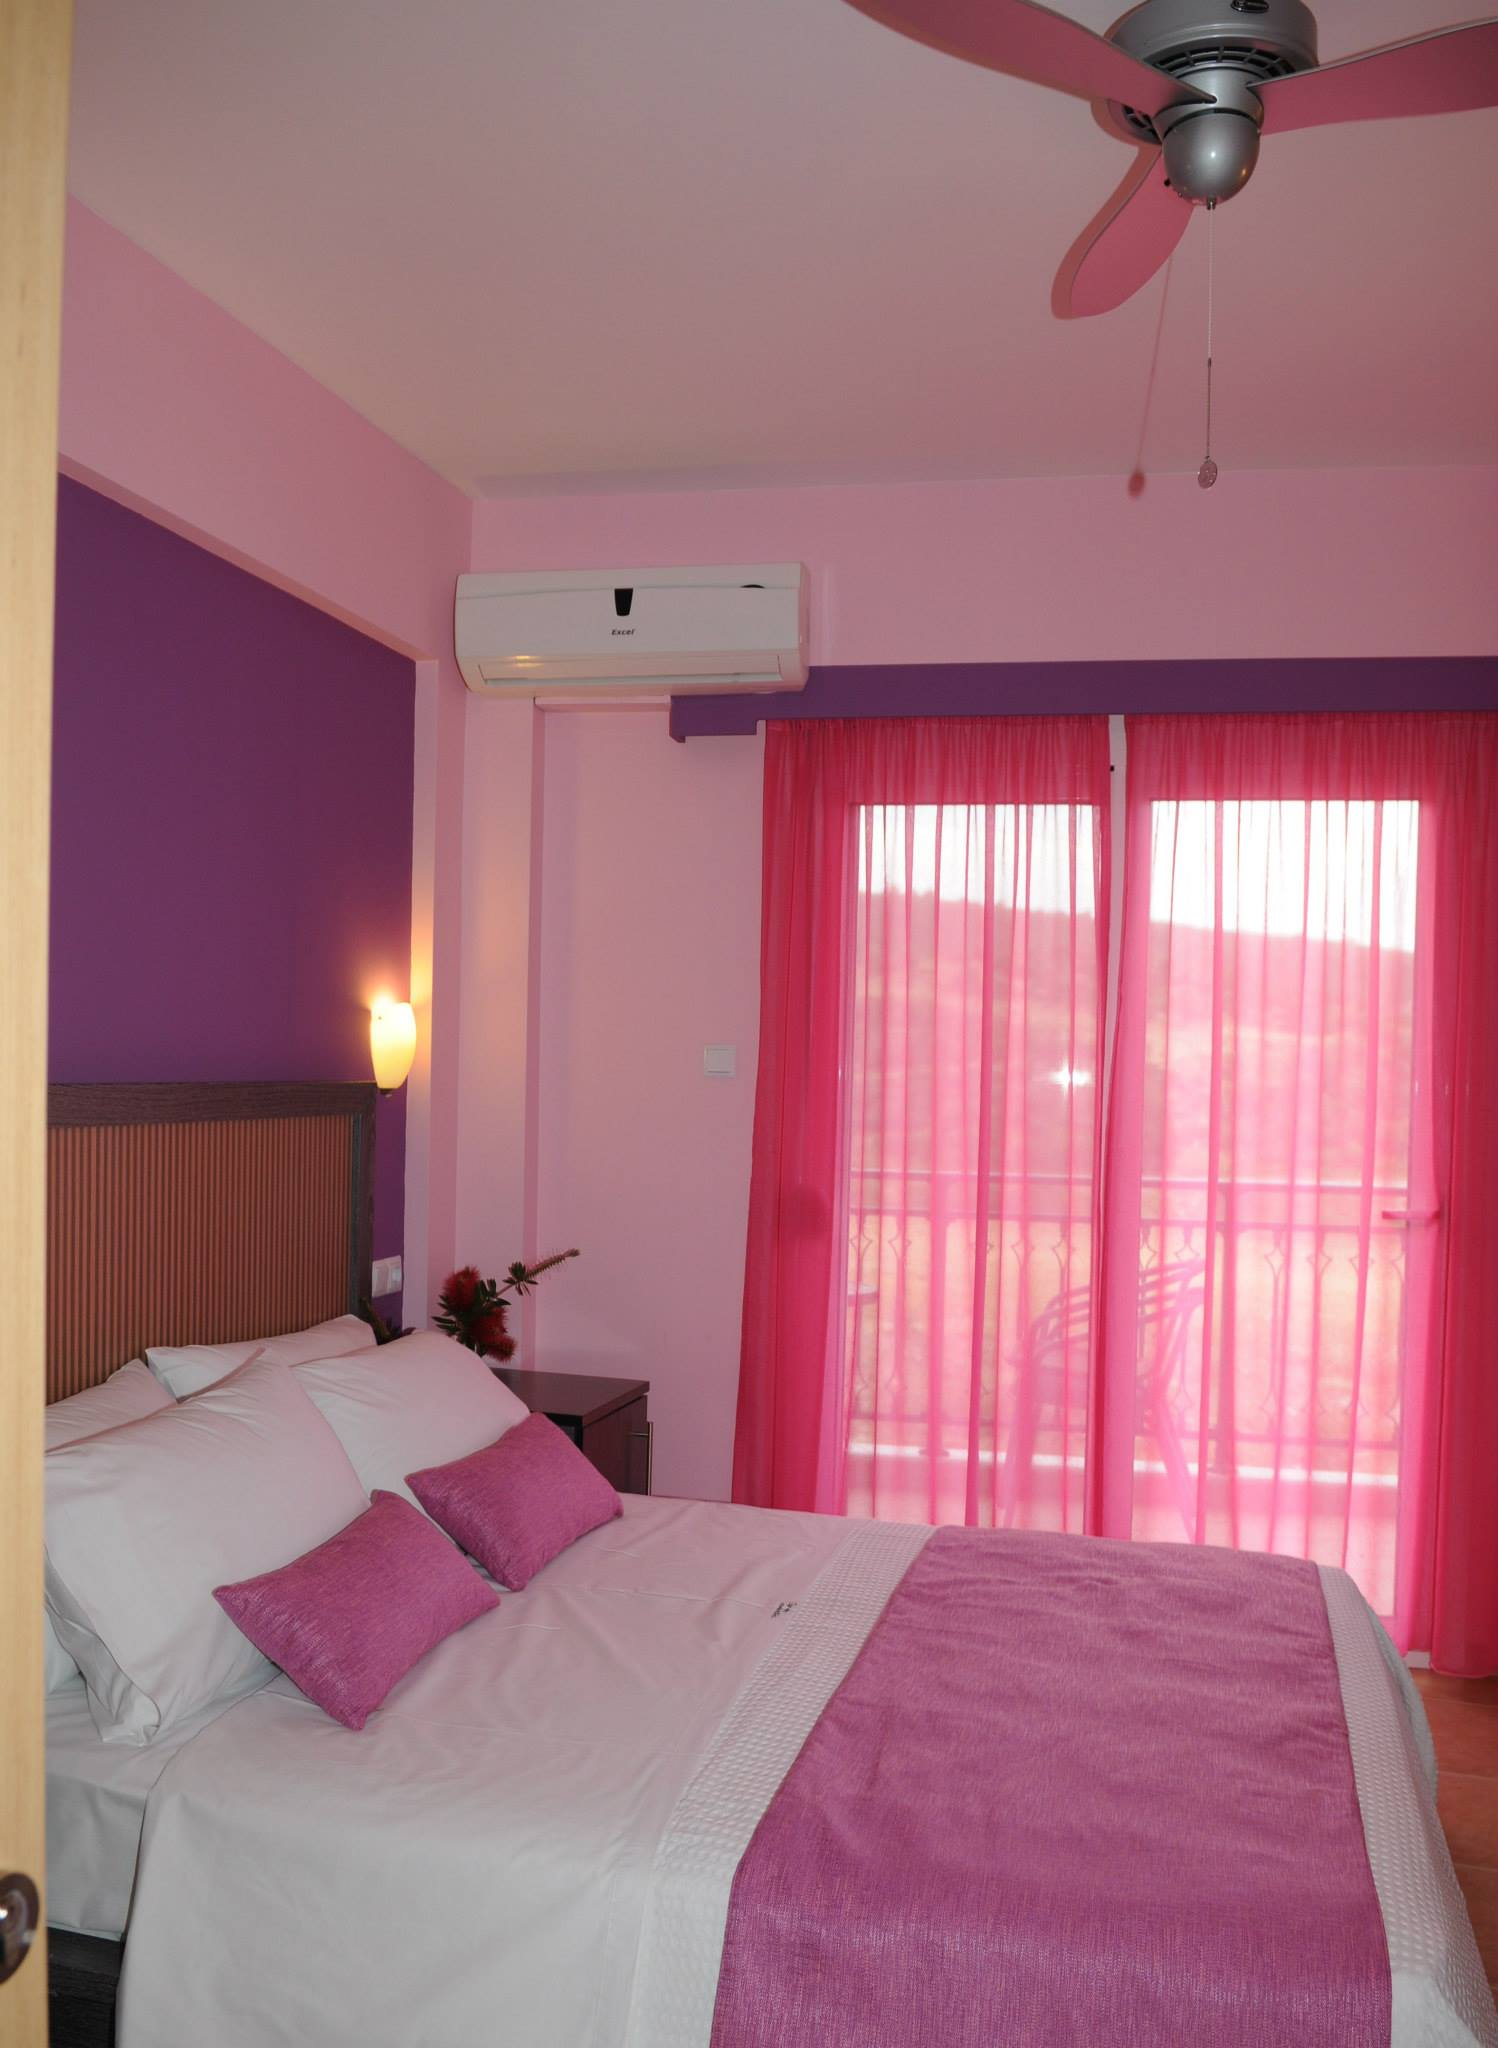 greenotel studios and apartmets sithonia room no. 2 (1)